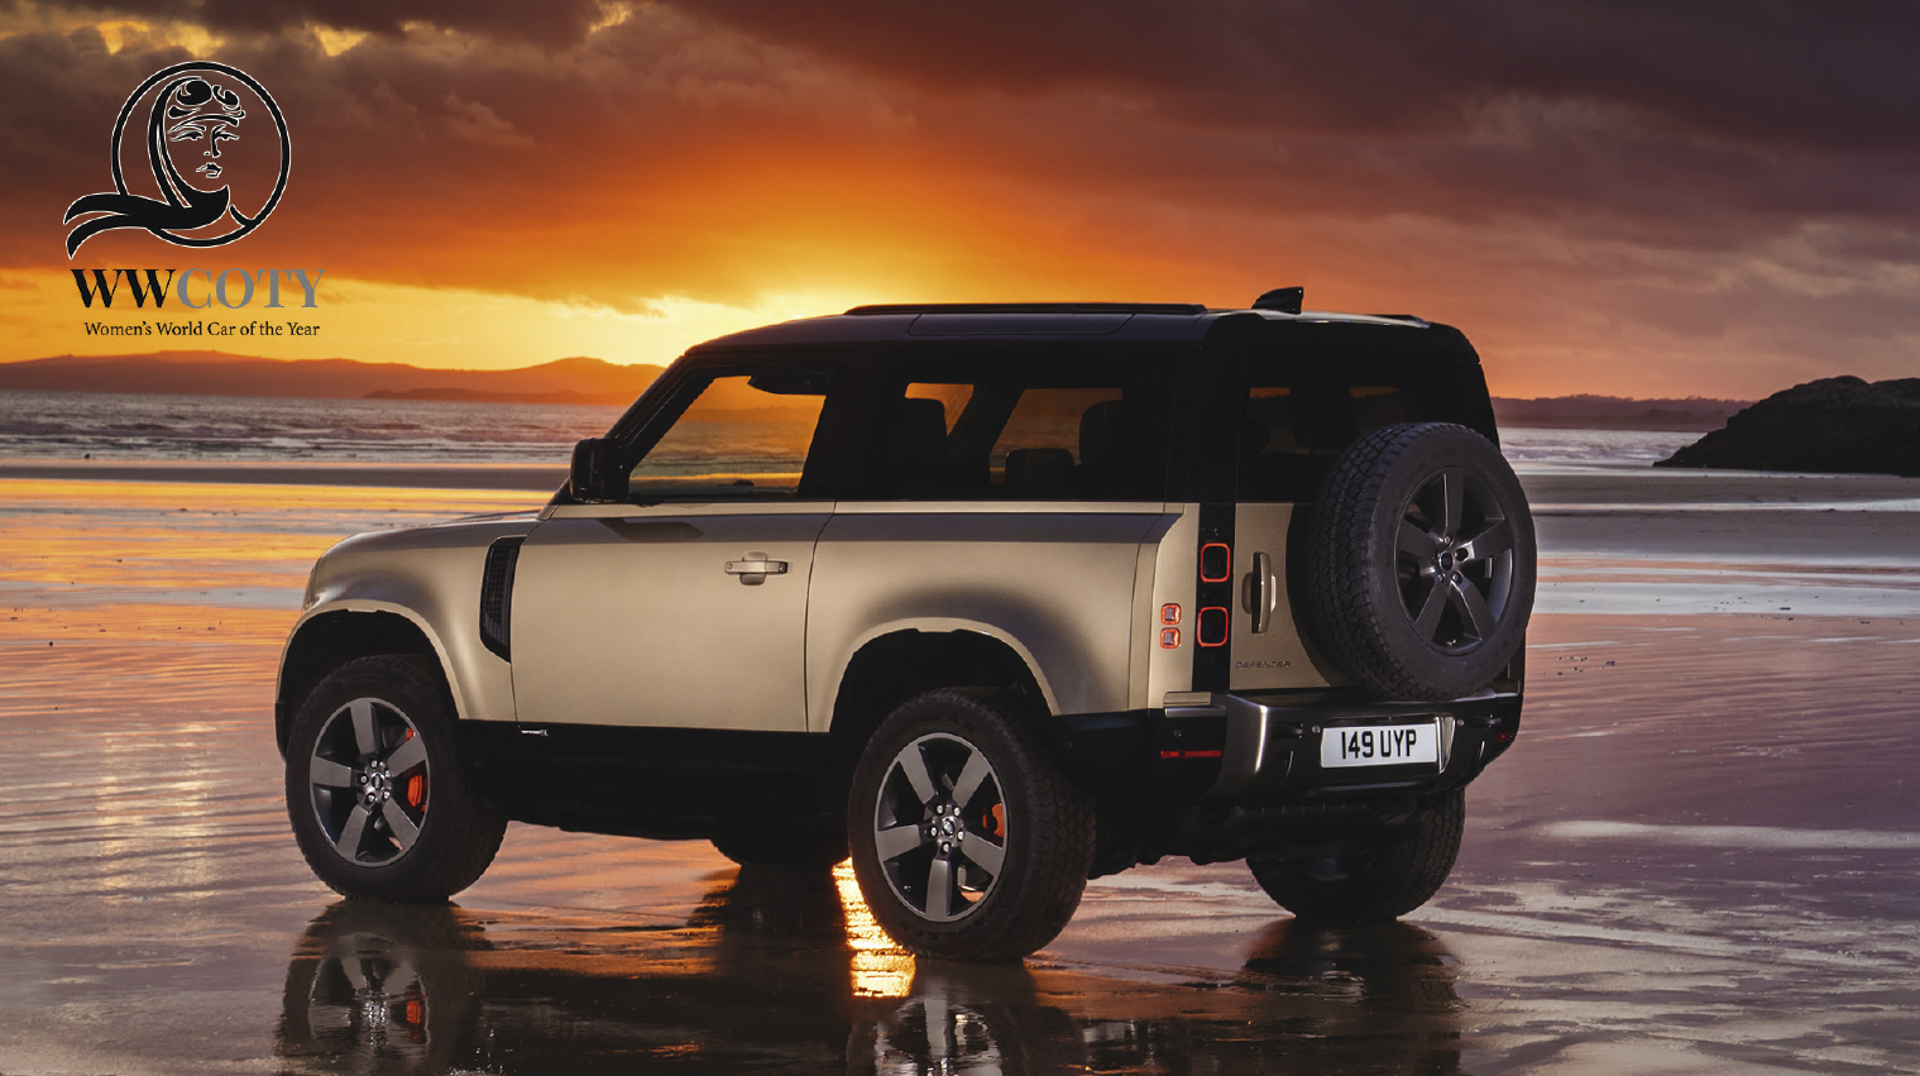 Land Rover Defender crowned as the Supreme Winner Women's World Car of the Year 2021